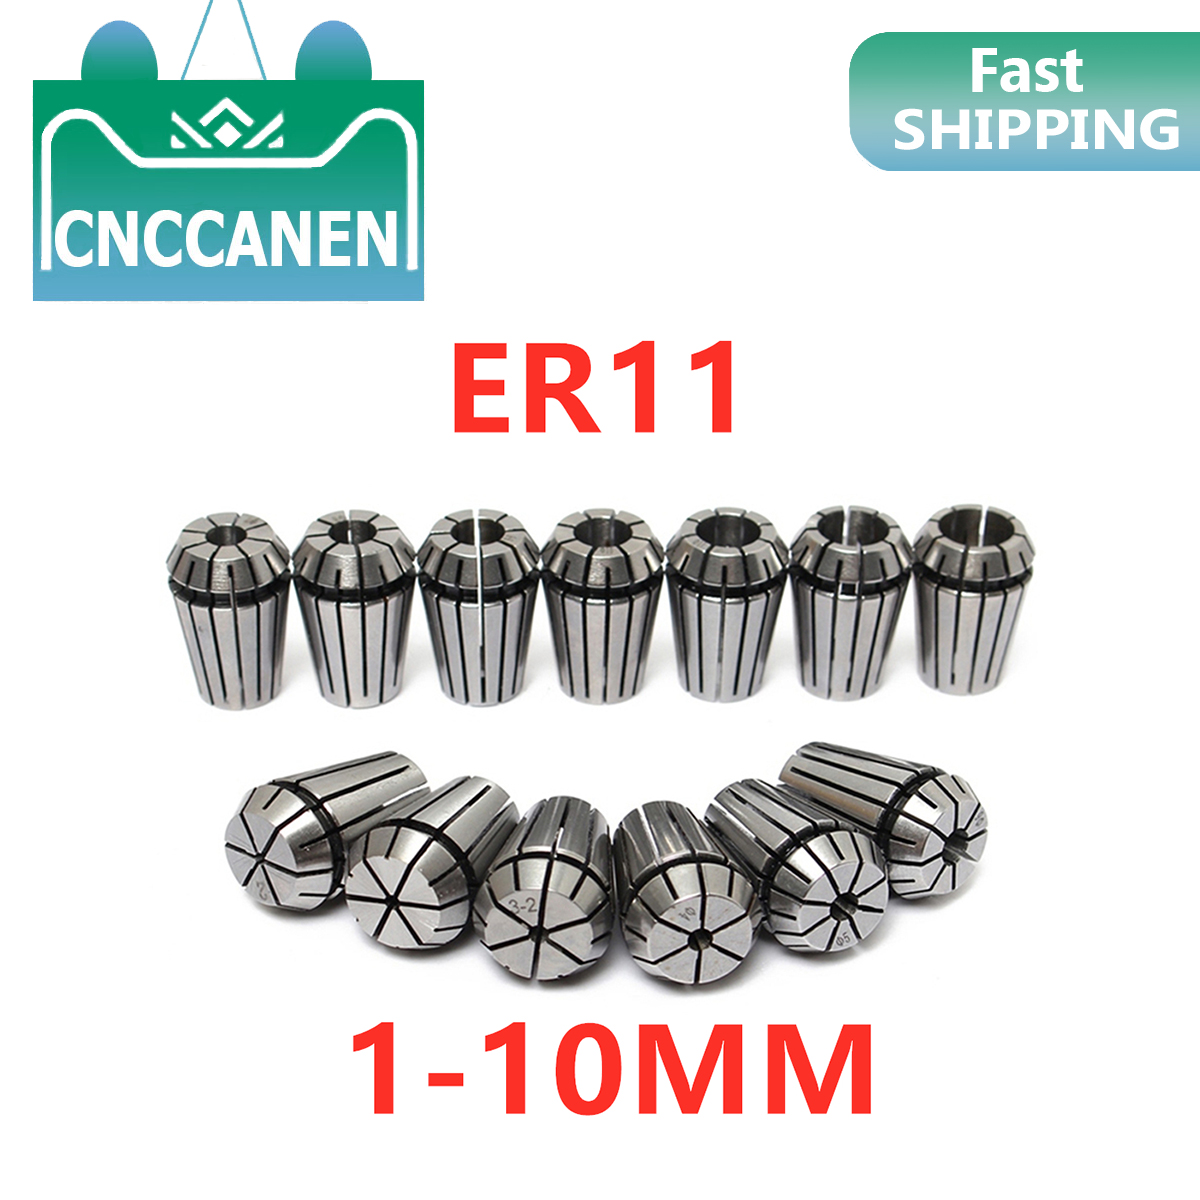 1pc ER11 3mm 1/8 Inch (3.175mm) 4mm 6mm 1mm 2mm 2.5mm Spring Collet Chucks Tool Holder For CNC Engraving Machine&Milling Lathe